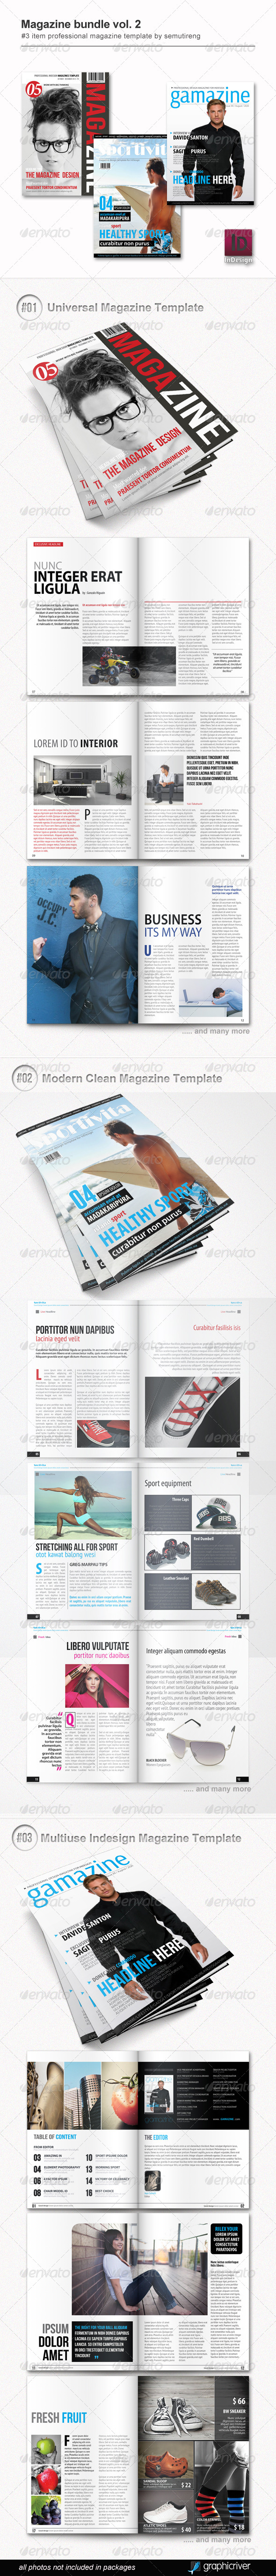 Magazine Bundle Vol 2 - Magazines Print Templates